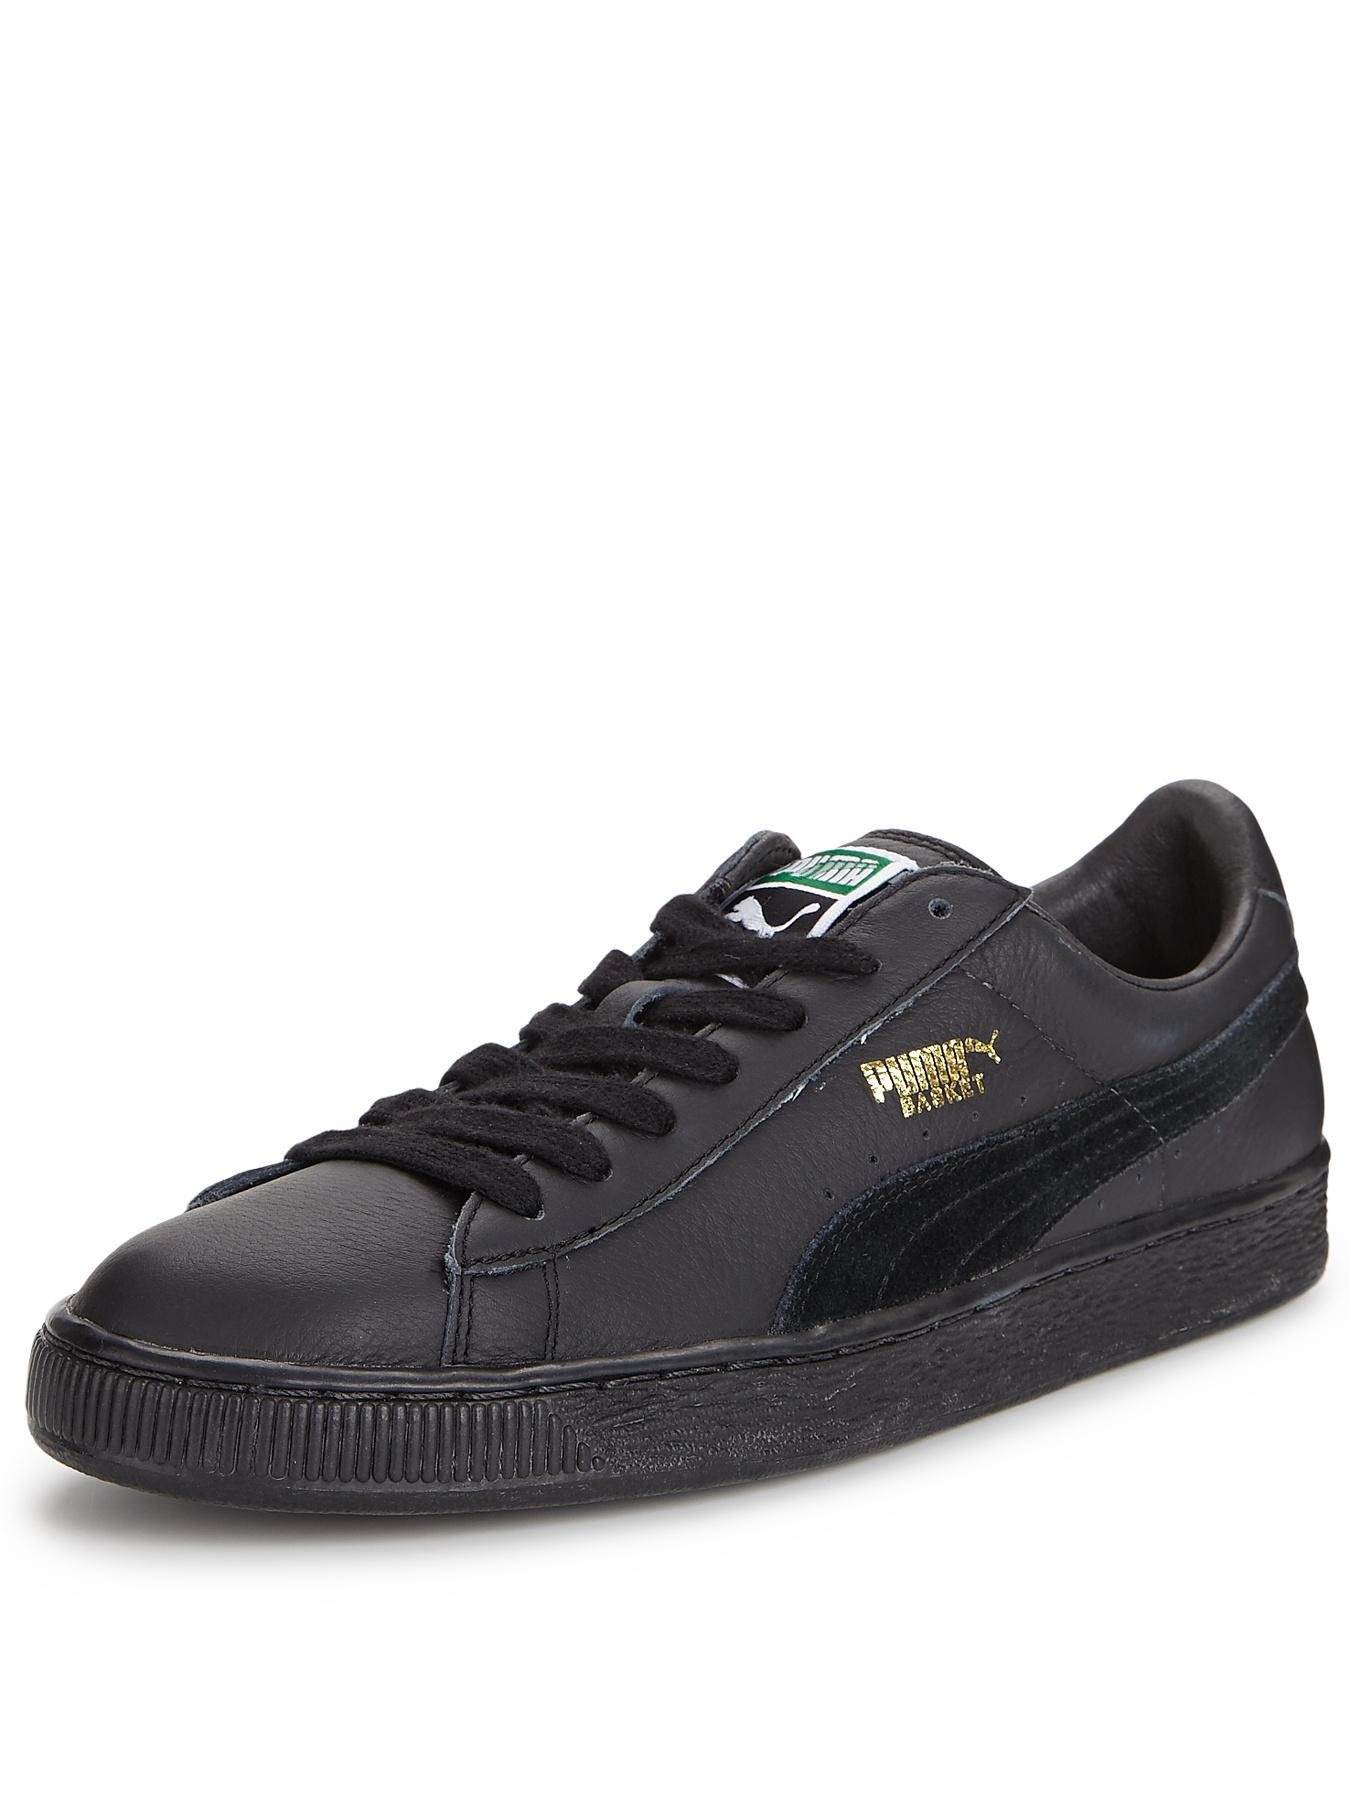 Puma Basket Classic Canvas Shoes